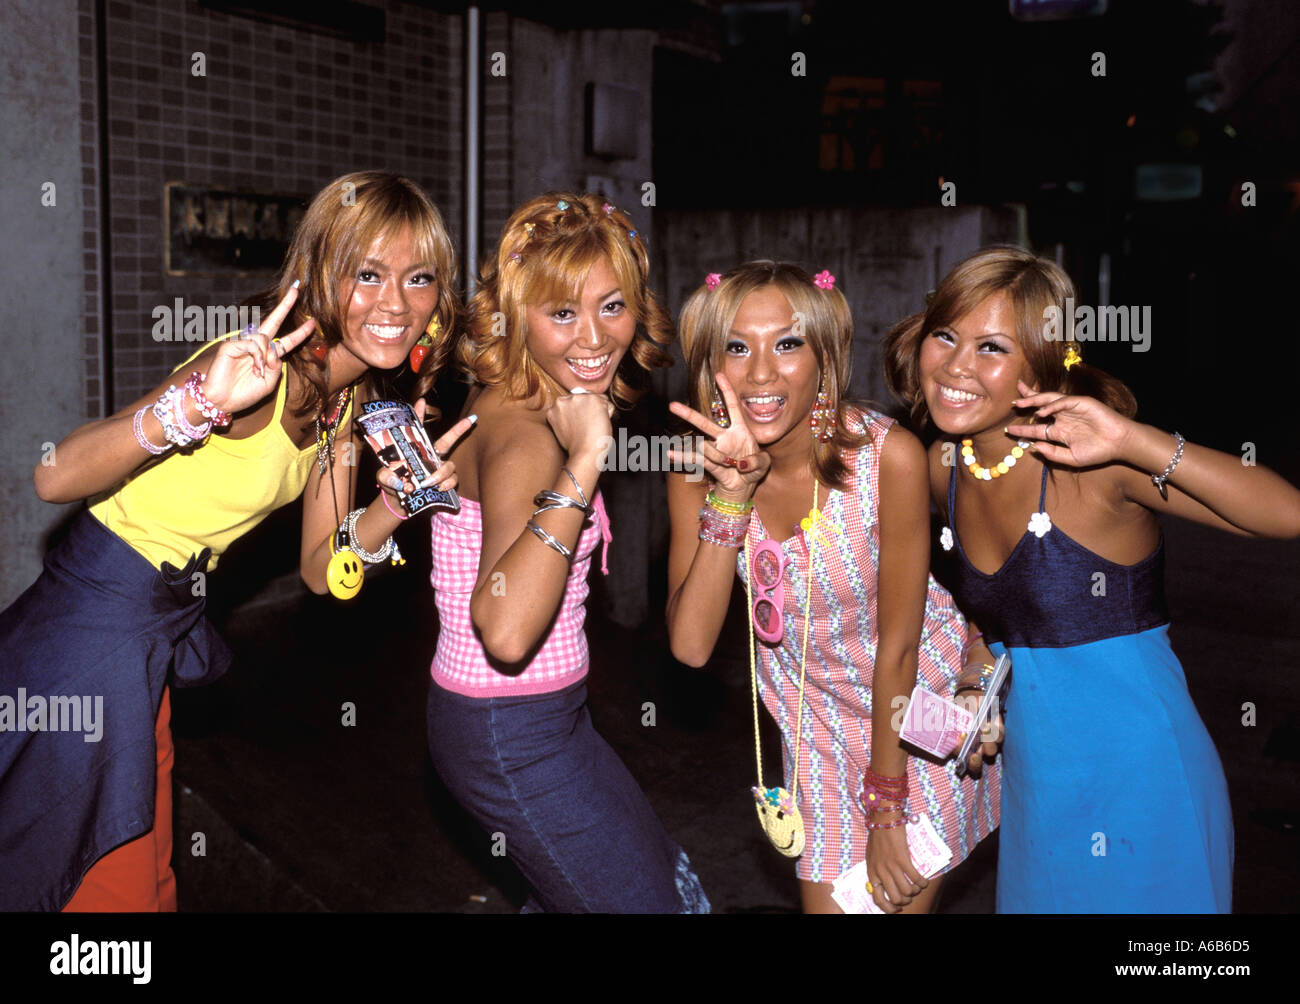 Four Girls Dressed In Ganguro Style Fashion Making Faces For The